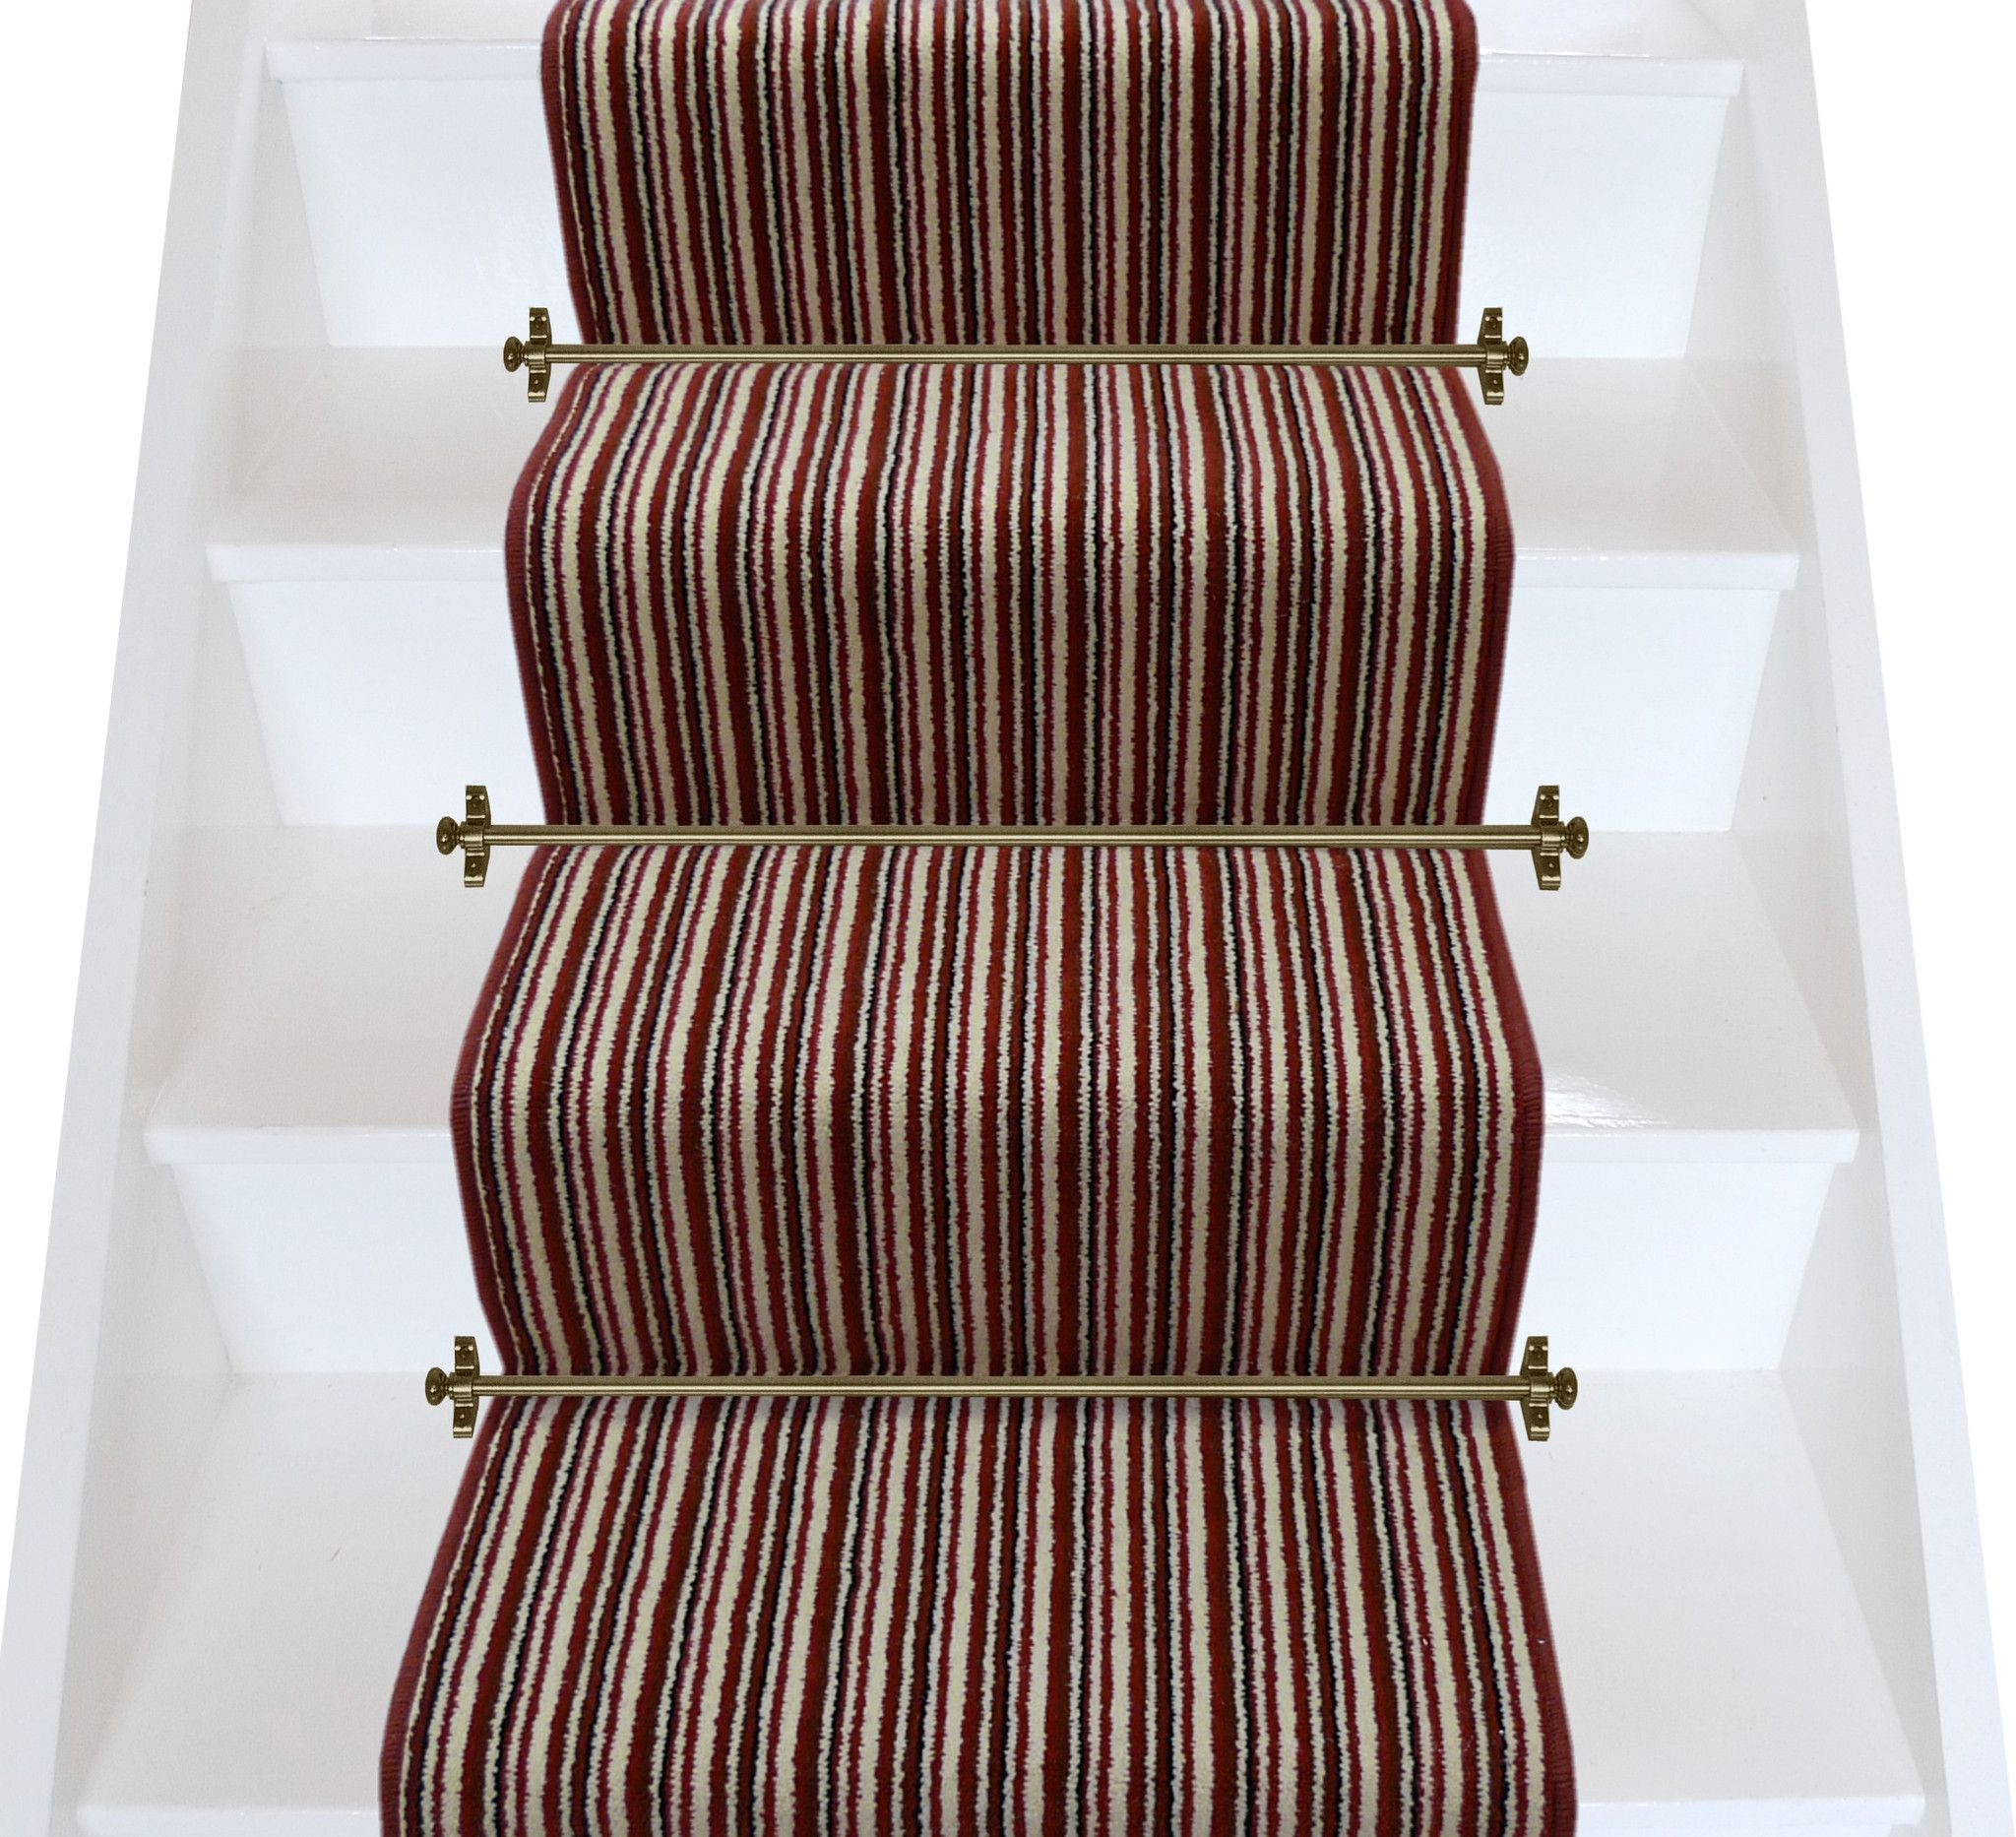 Axminster Carpets Train Stripe Salsa Stripe Stair Runner